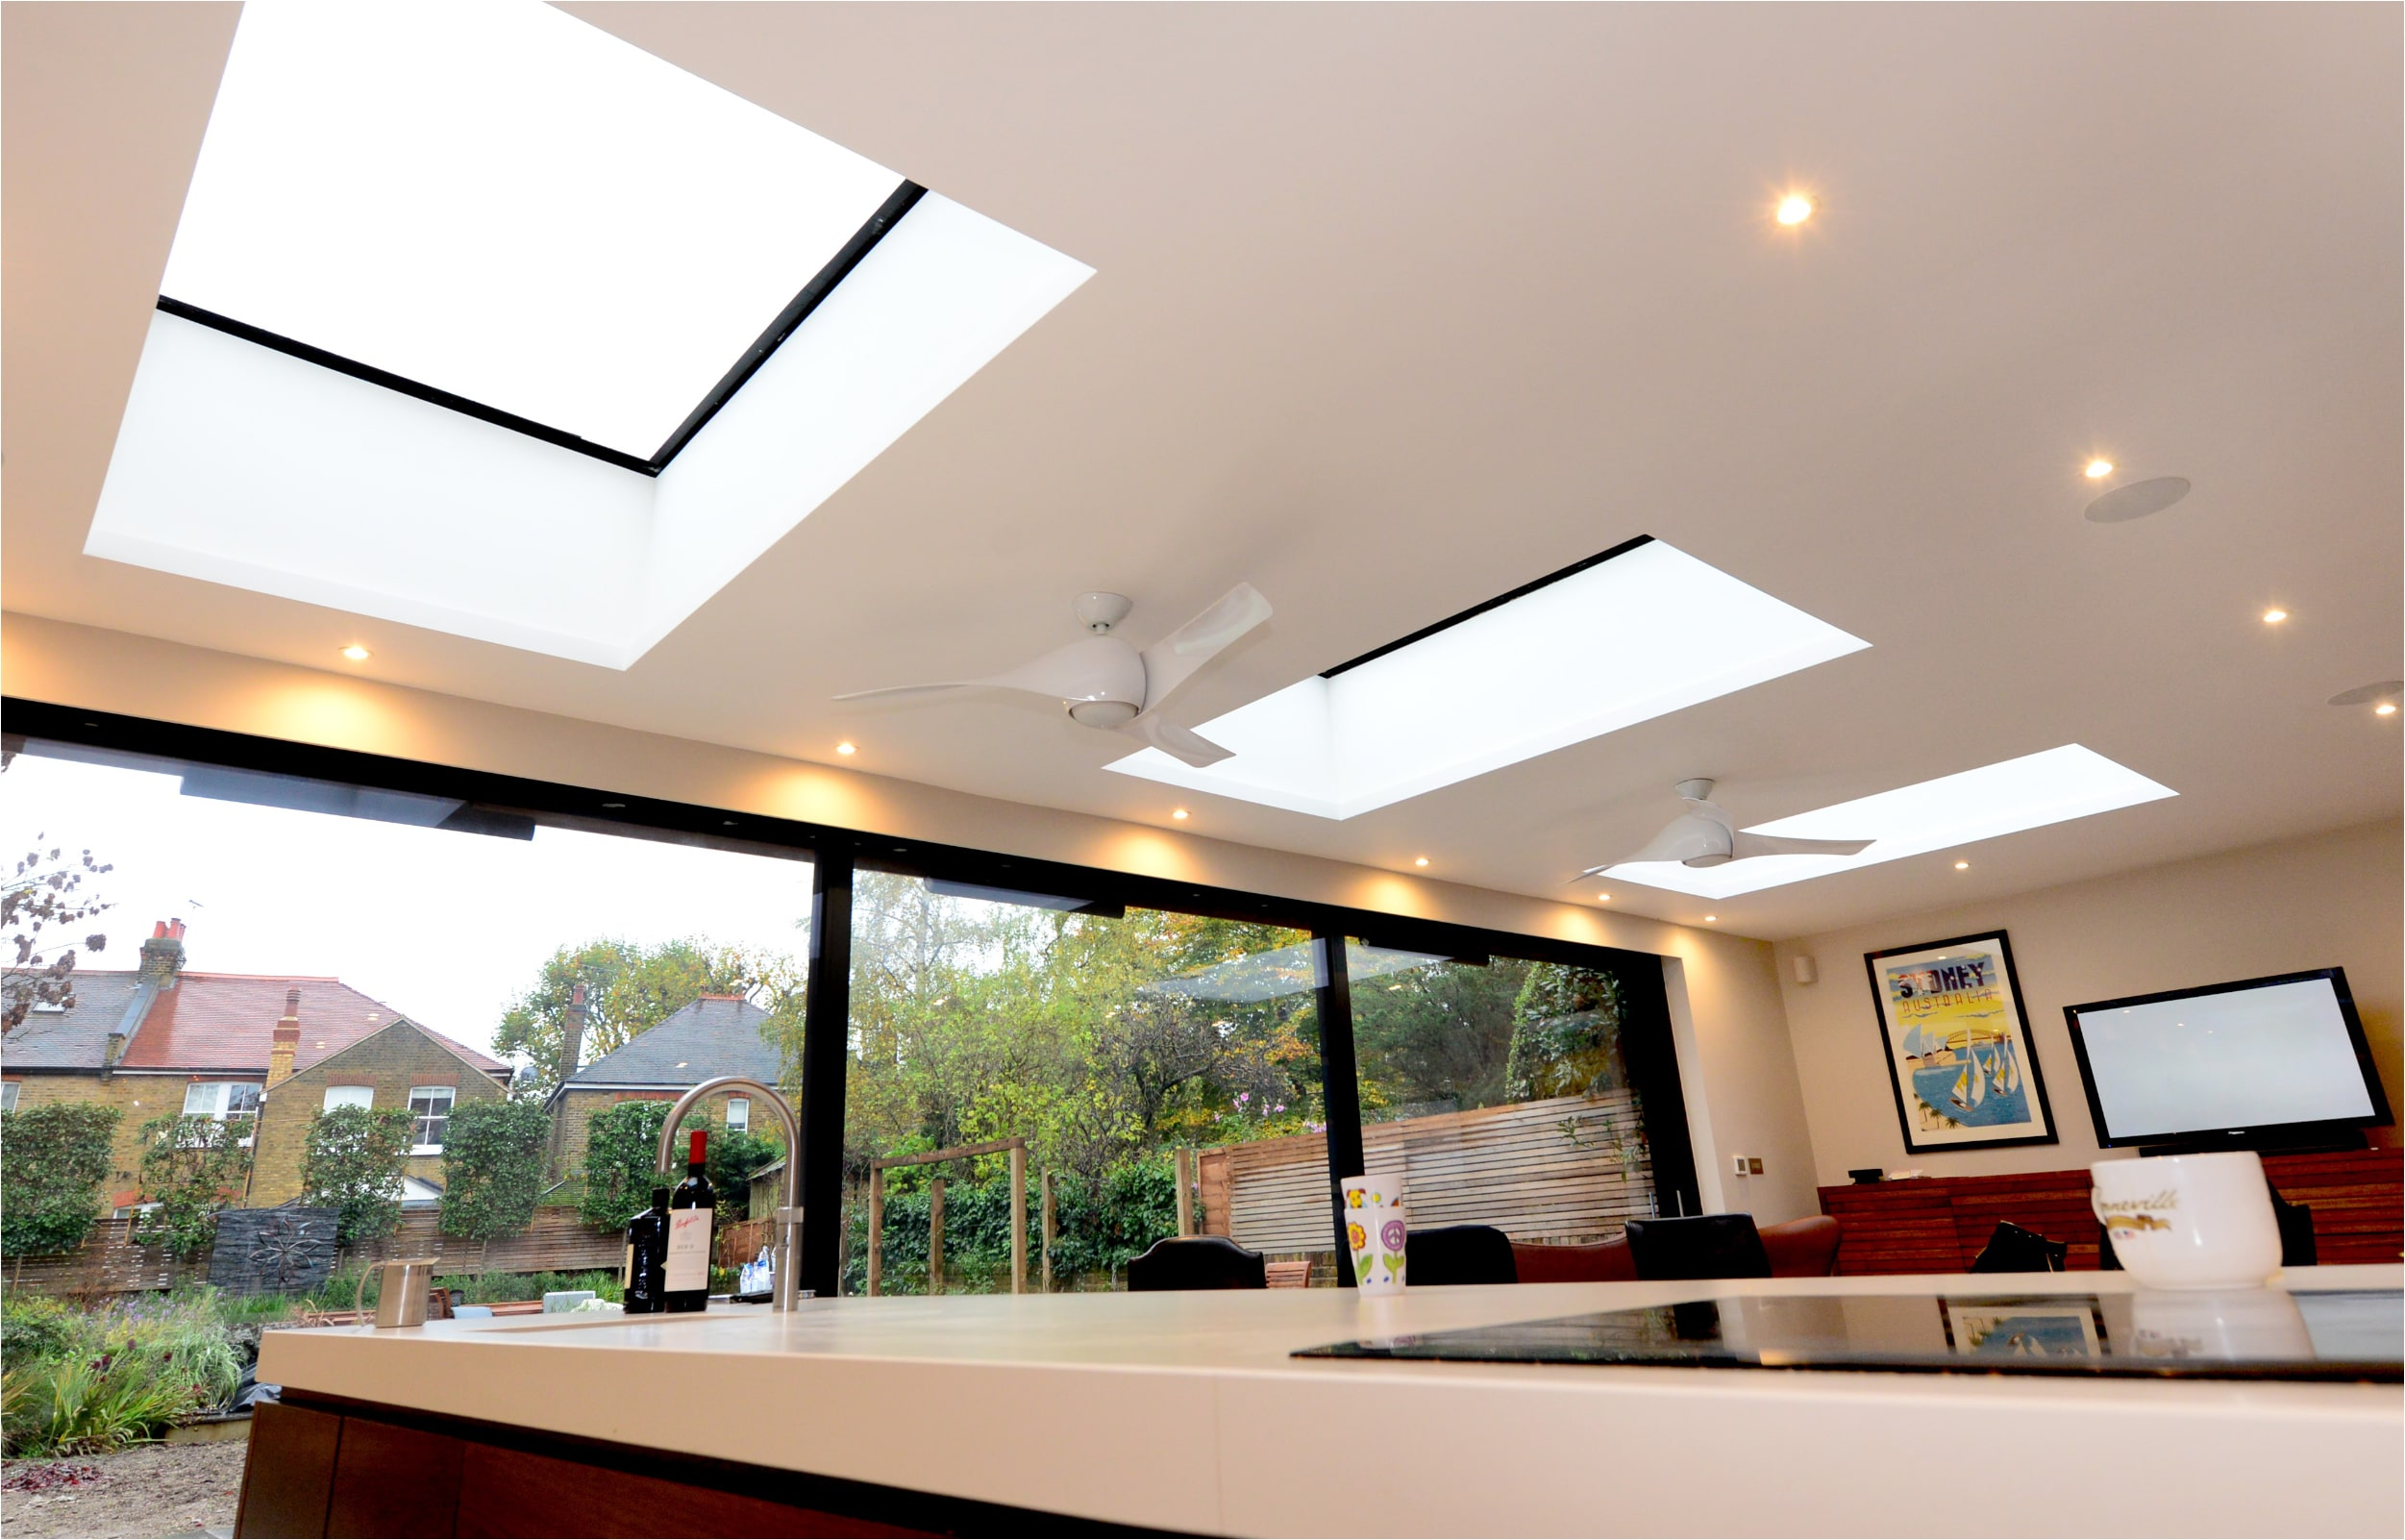 Rooflights Complete Peace Of Mind Whatever The Weather Idsystems